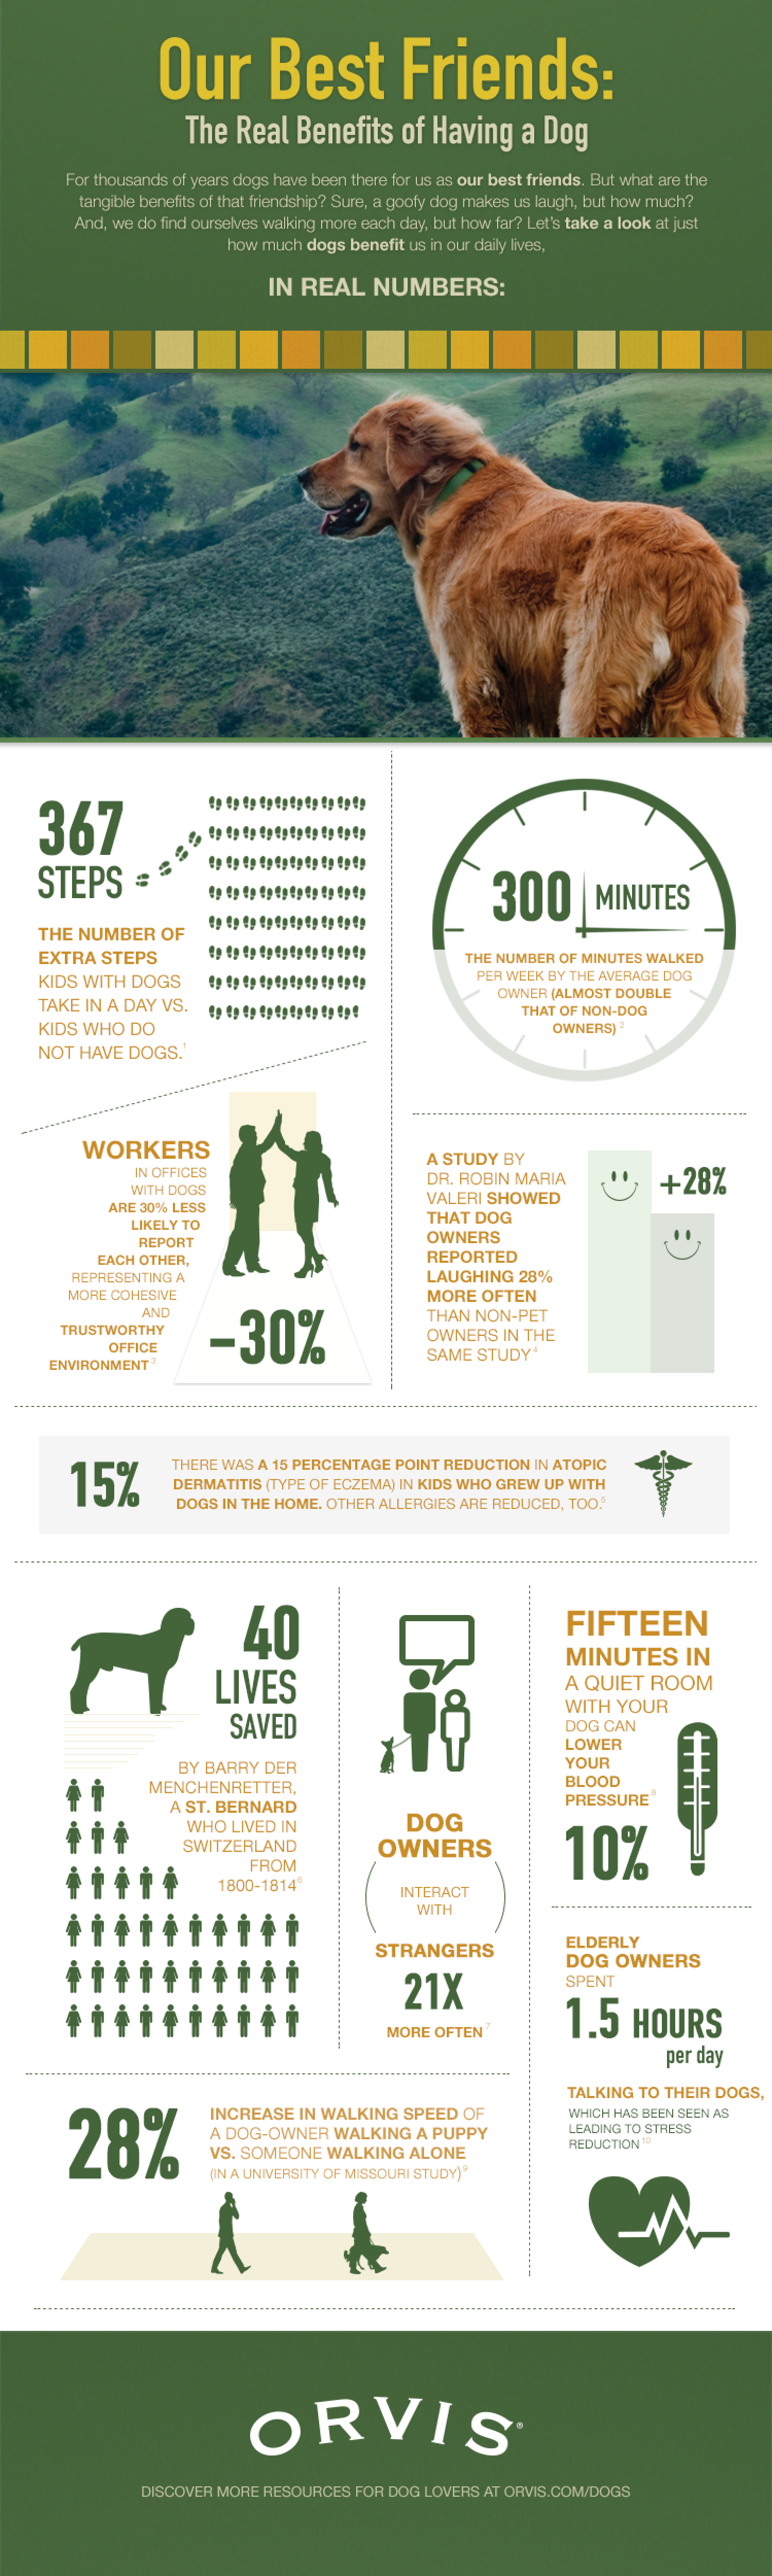 The Real Benefits of Dog Ownership Infographic